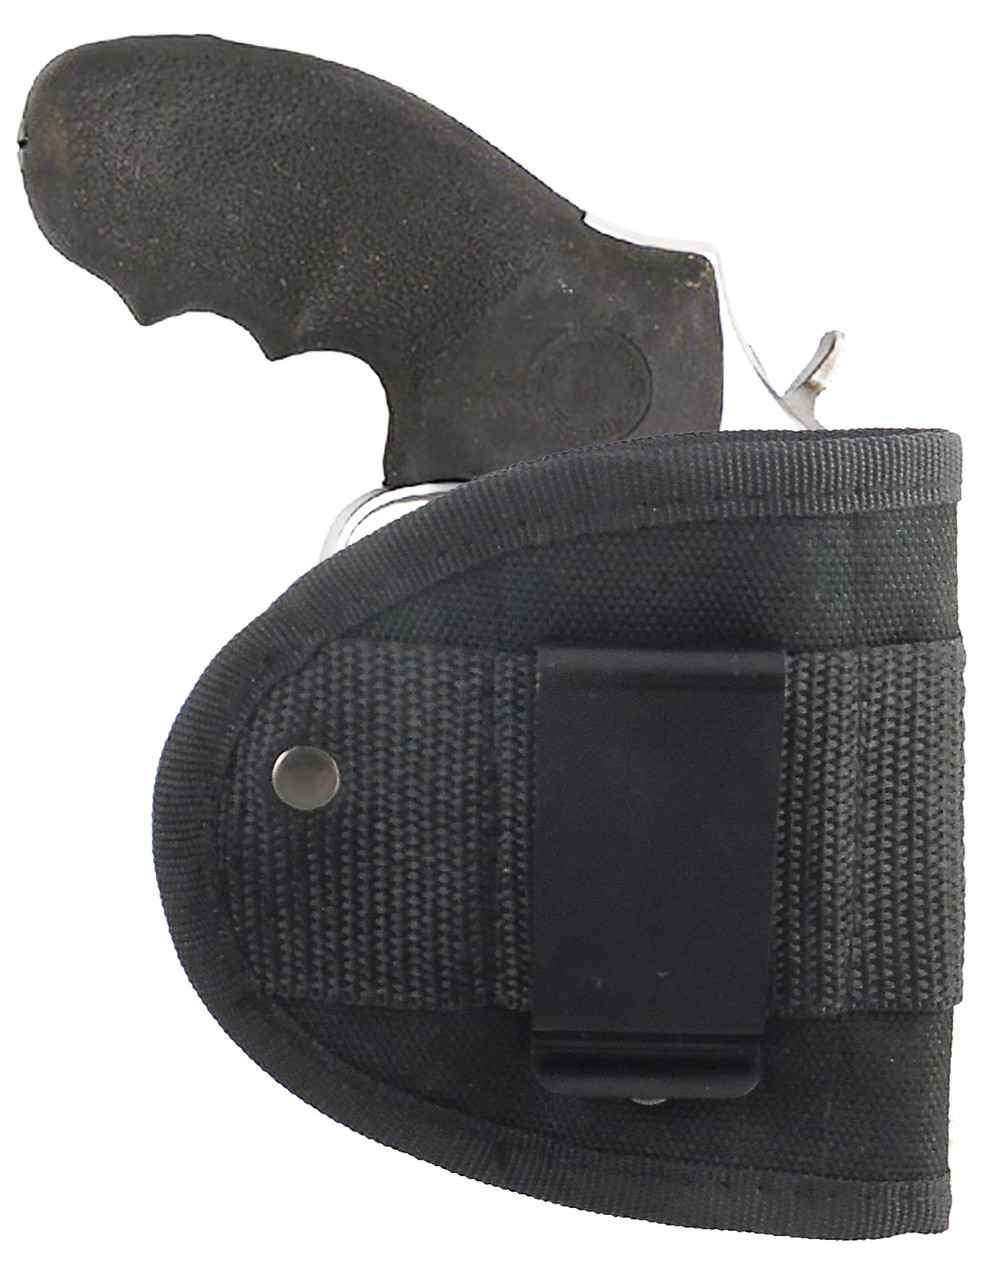 Inside Waistband Poly Sling Holster Fits Smith & Wesson Bodyguard Revolver IWB (S1)